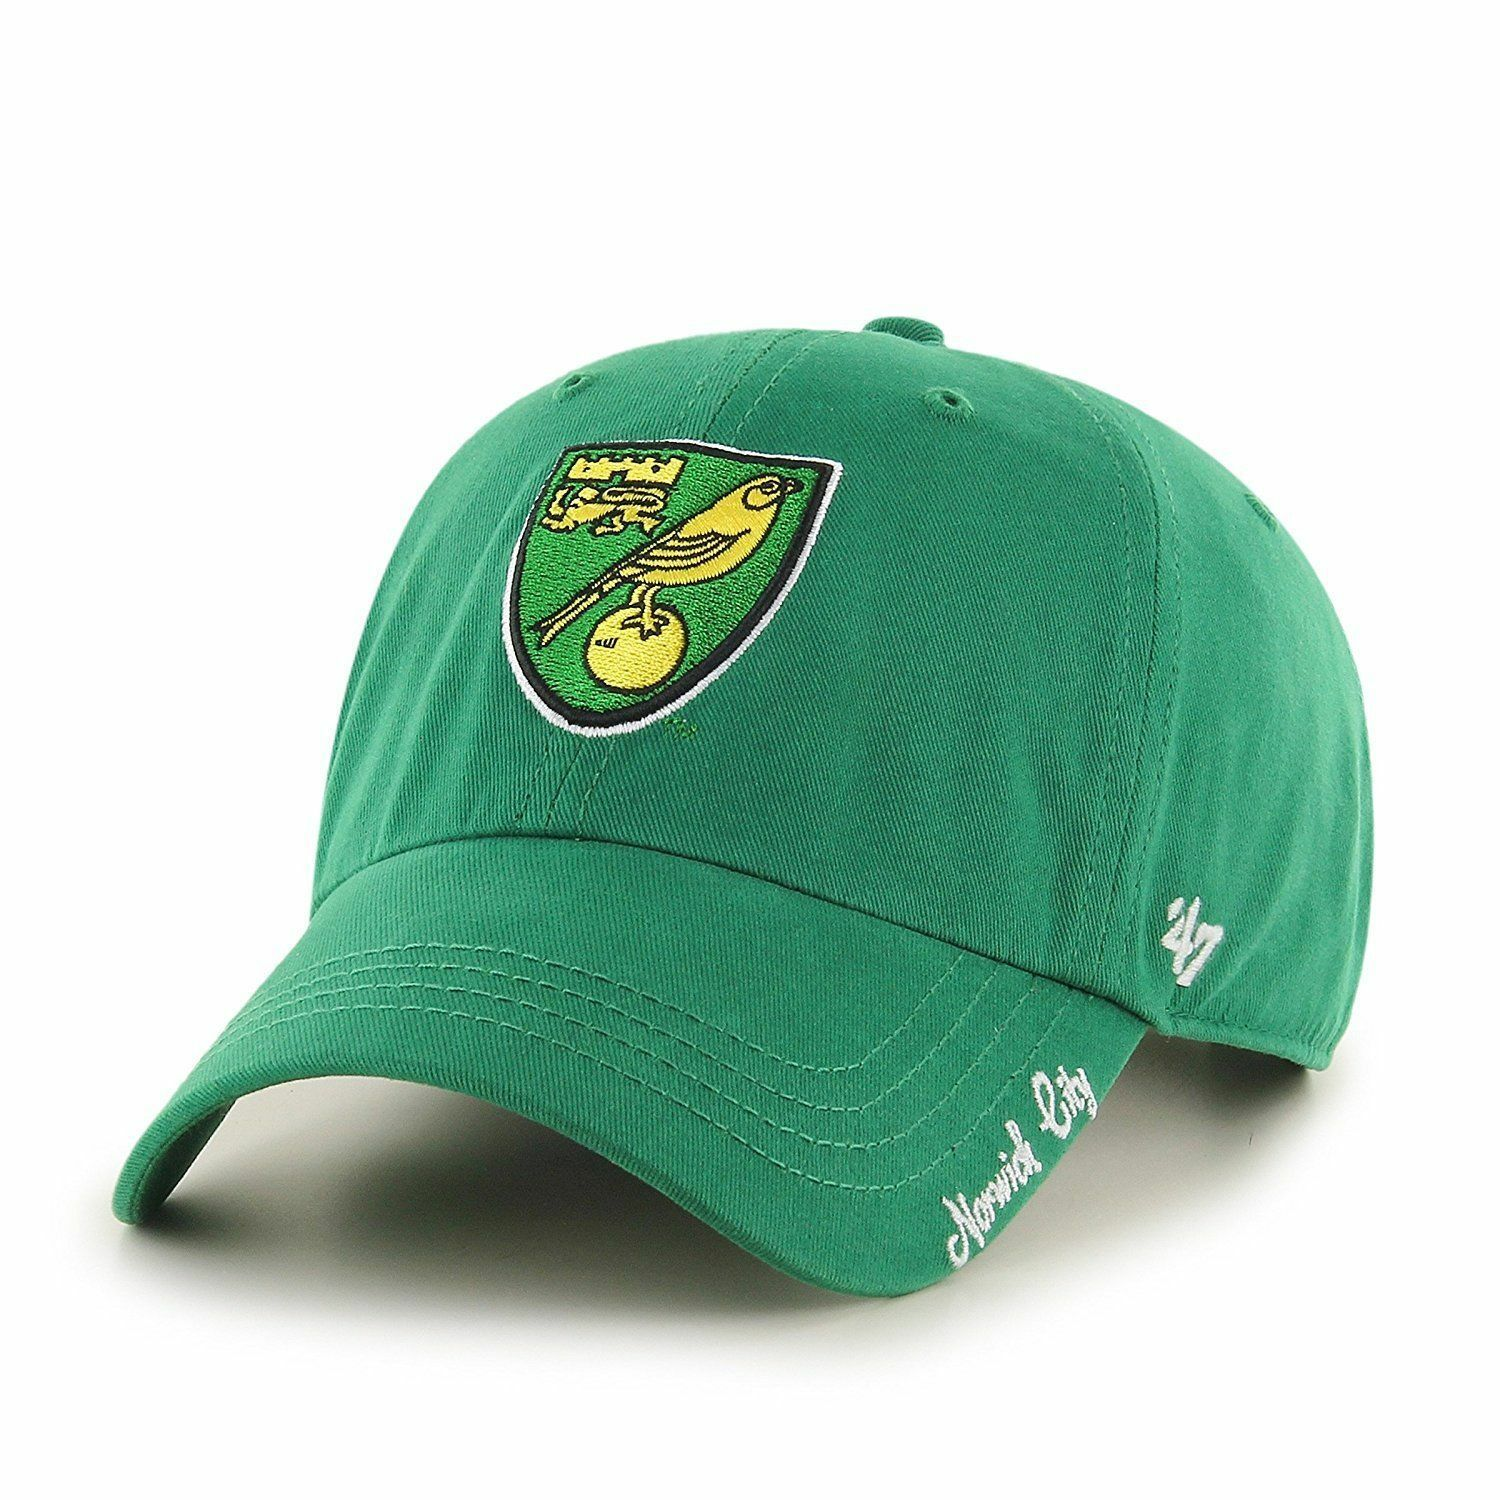 47 BRAND INTERNATIONAL SOCCER NORWICH CITY WOMENS EPL MIATA CLEAN UP HAT